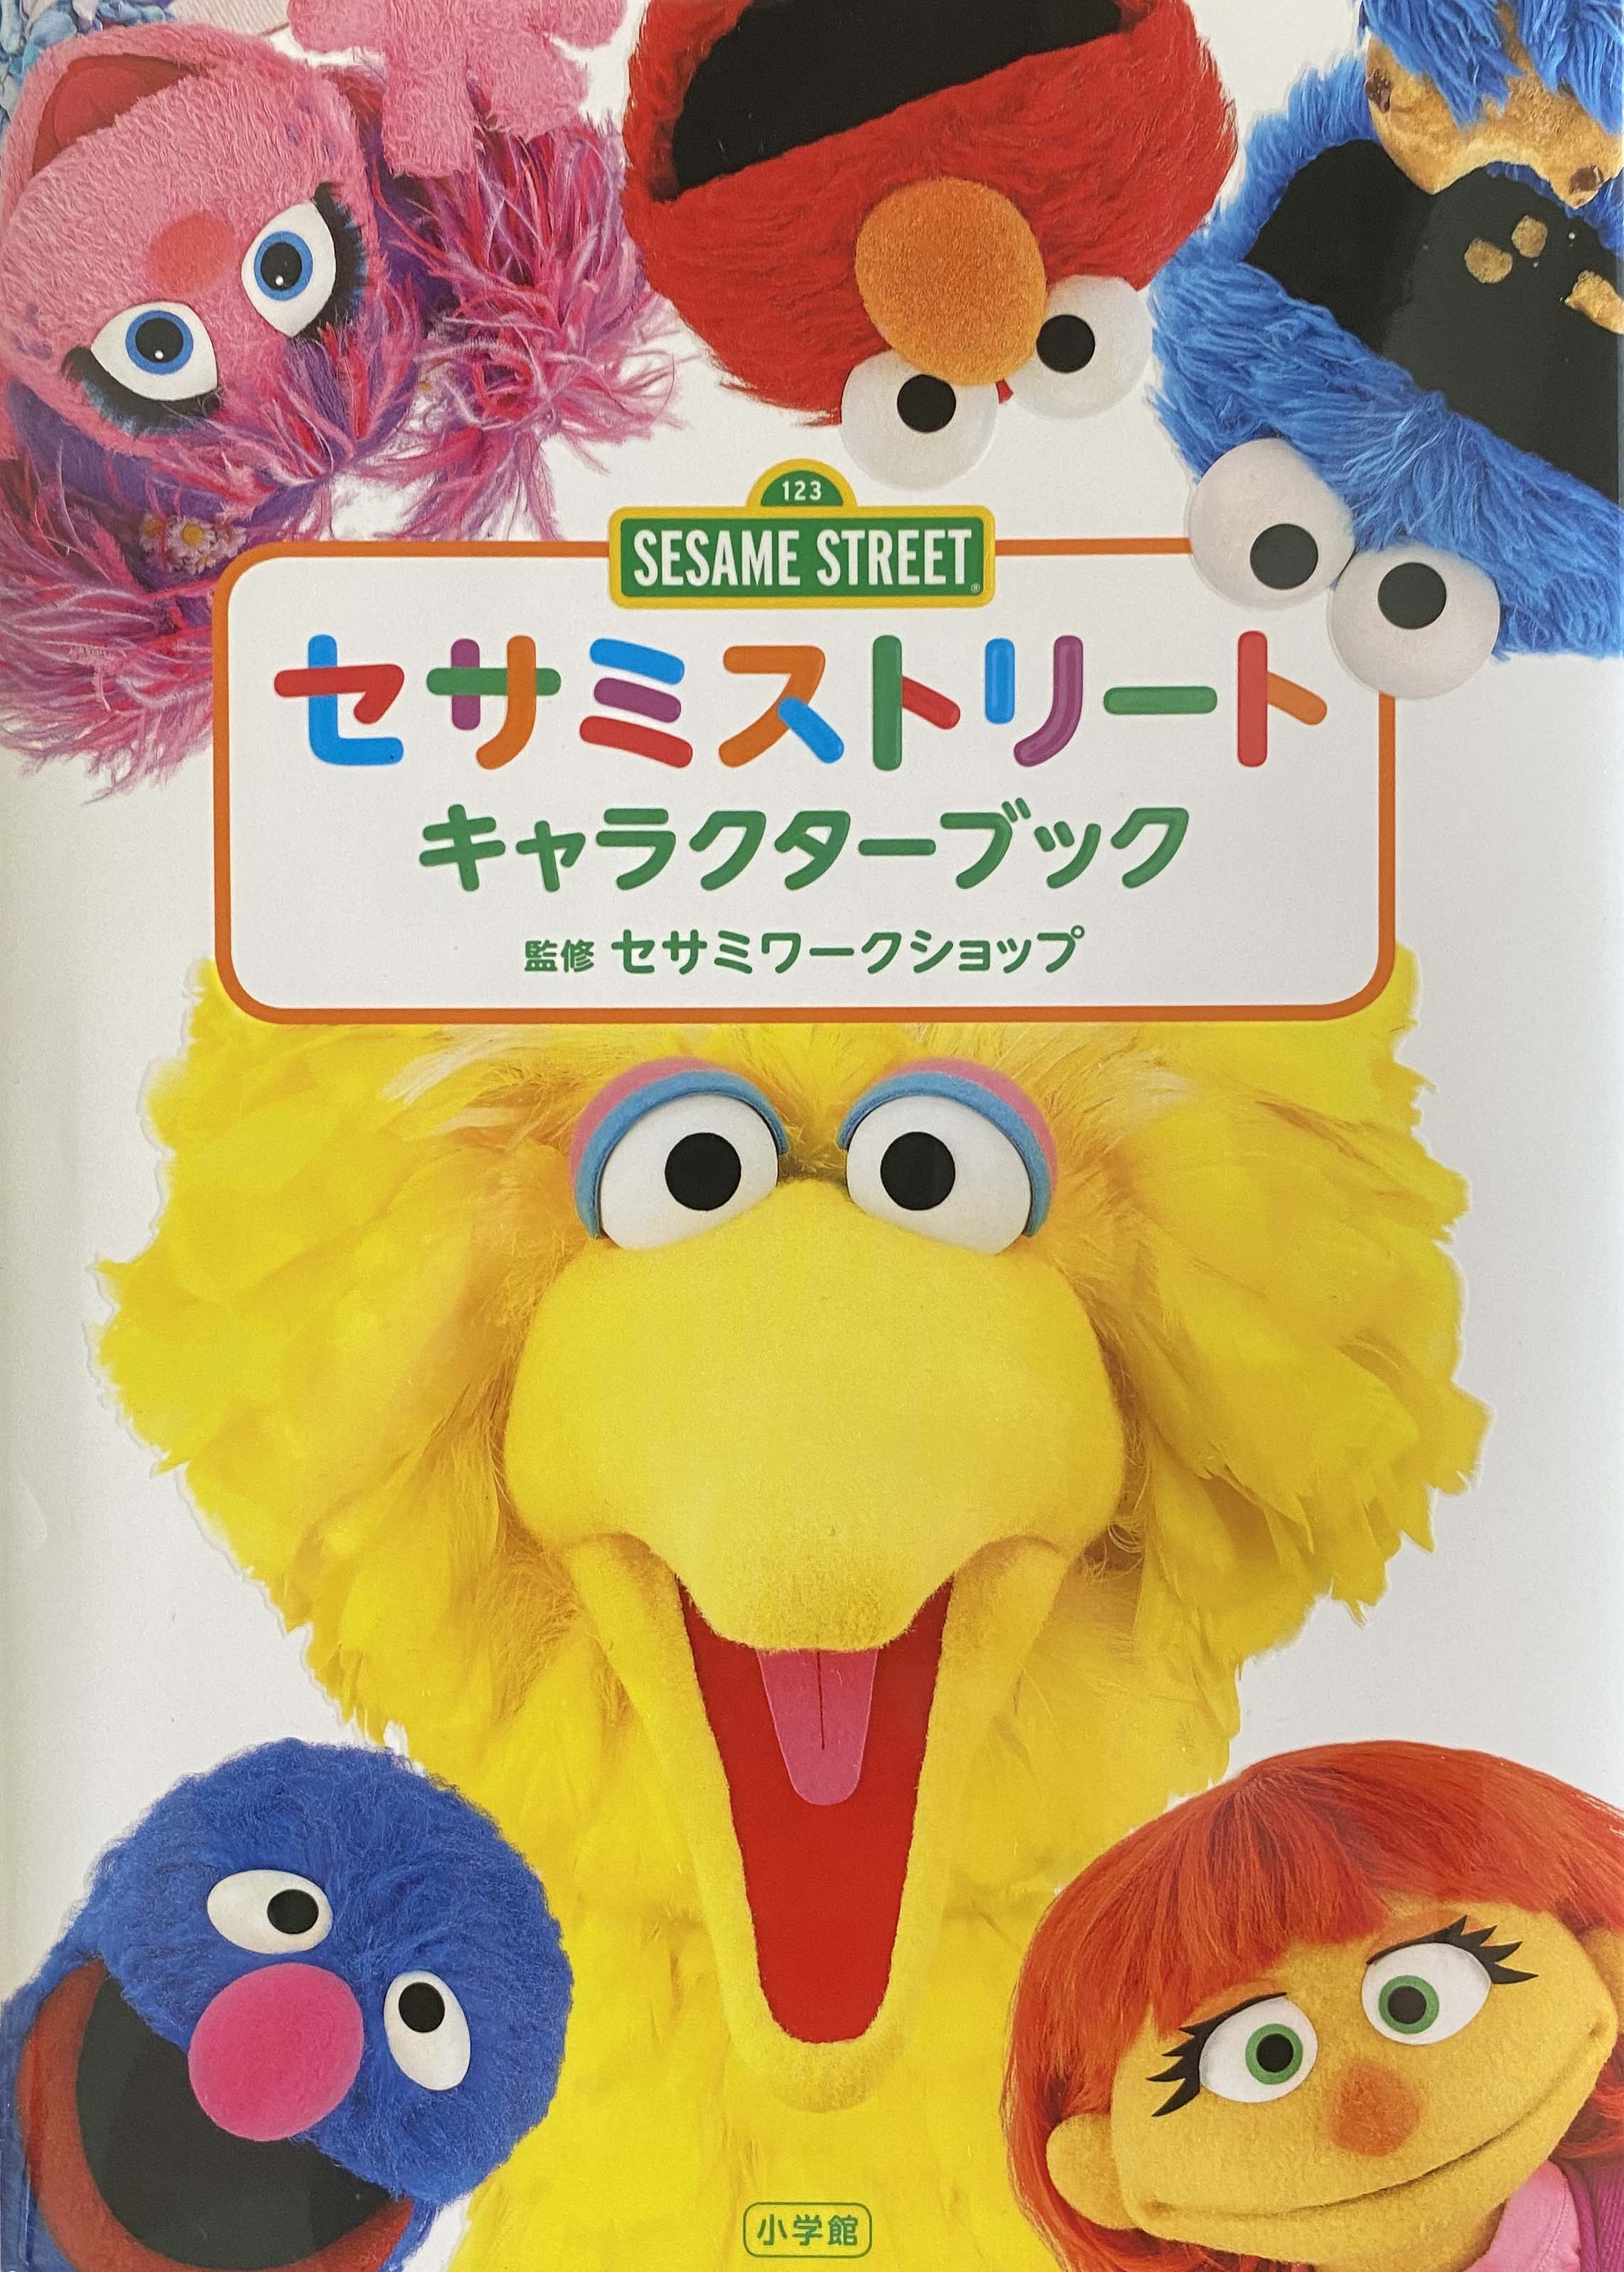 big bird, grover, julia, abby, elmo and cookie monster